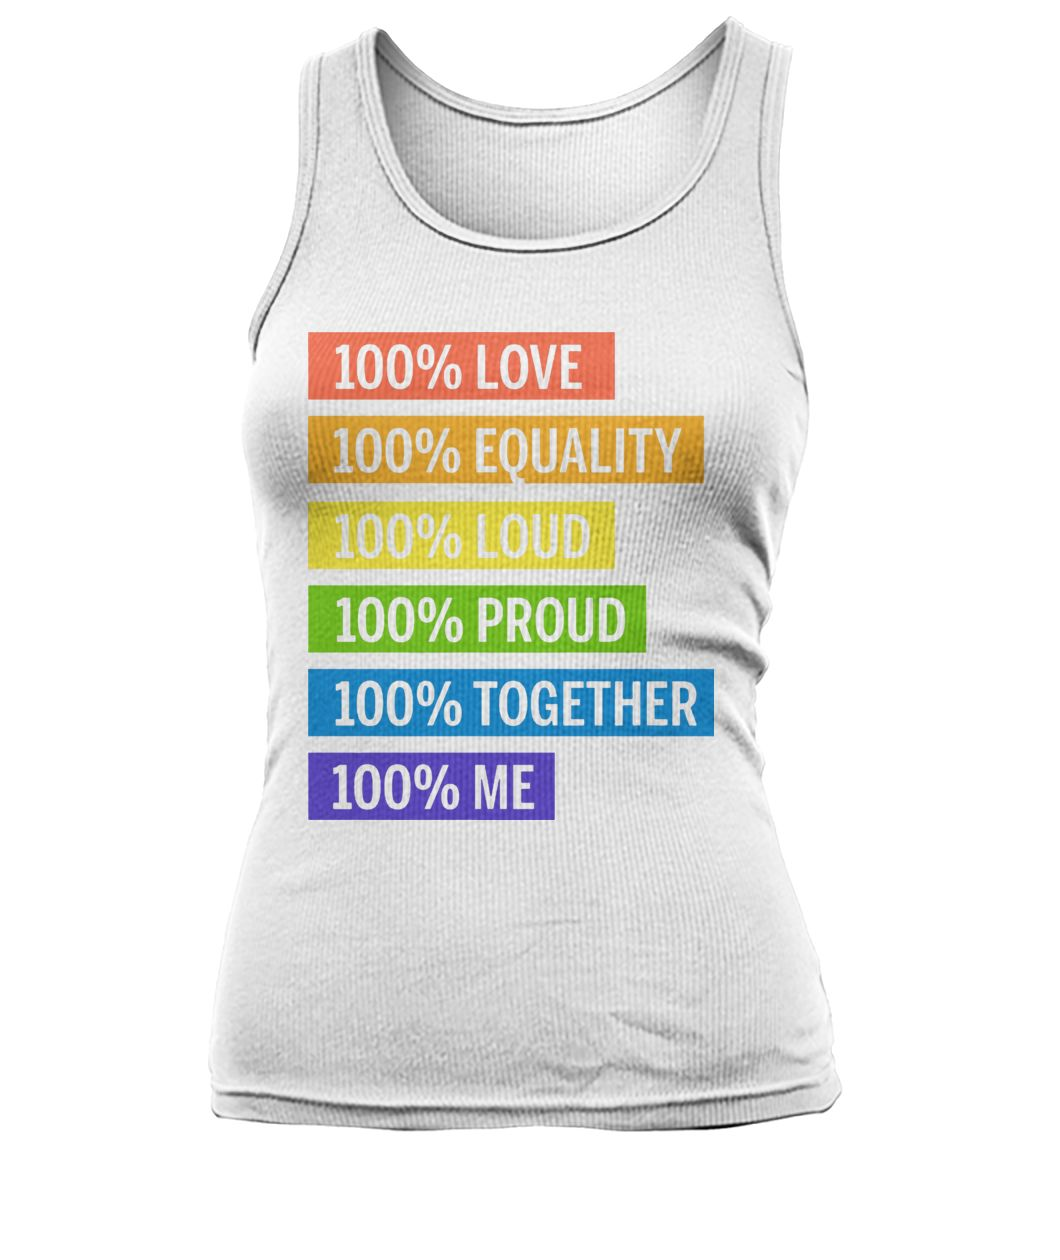 Brendon urie 100& love 100% equality 100% proud women's tank top